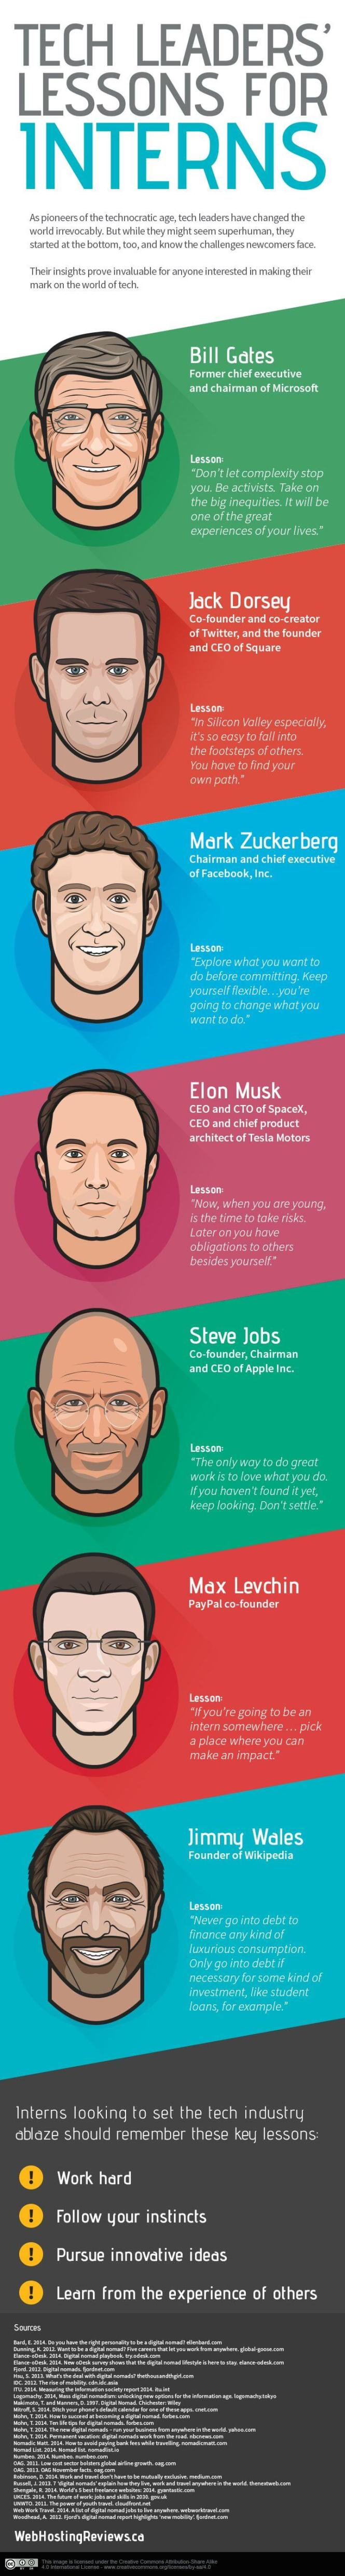 Tech Leaders' Lessons for Interns